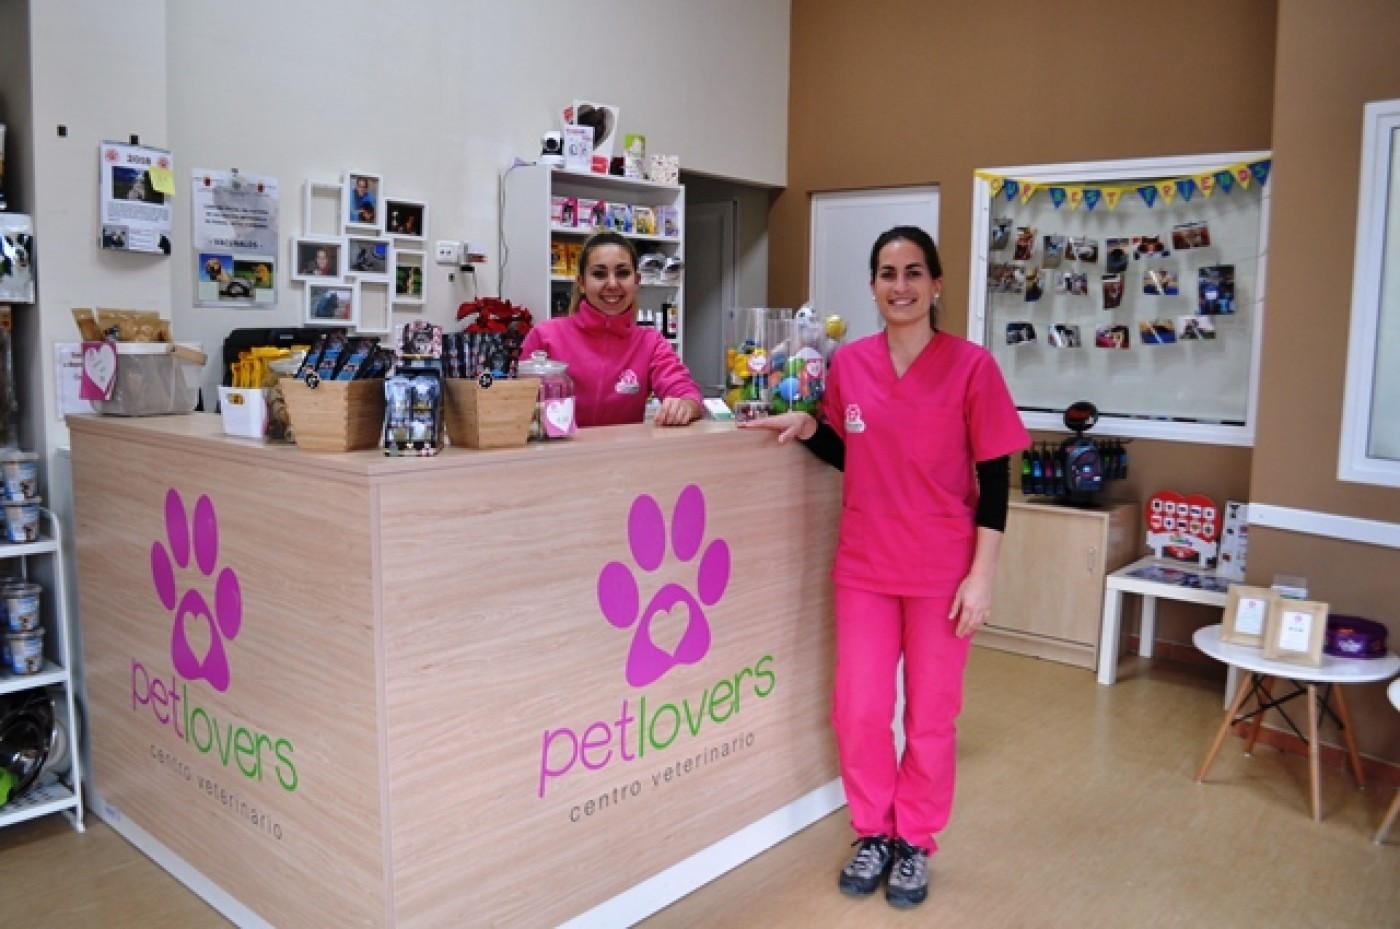 Pet Lovers Veterinary Clinic and grooming services Sucina